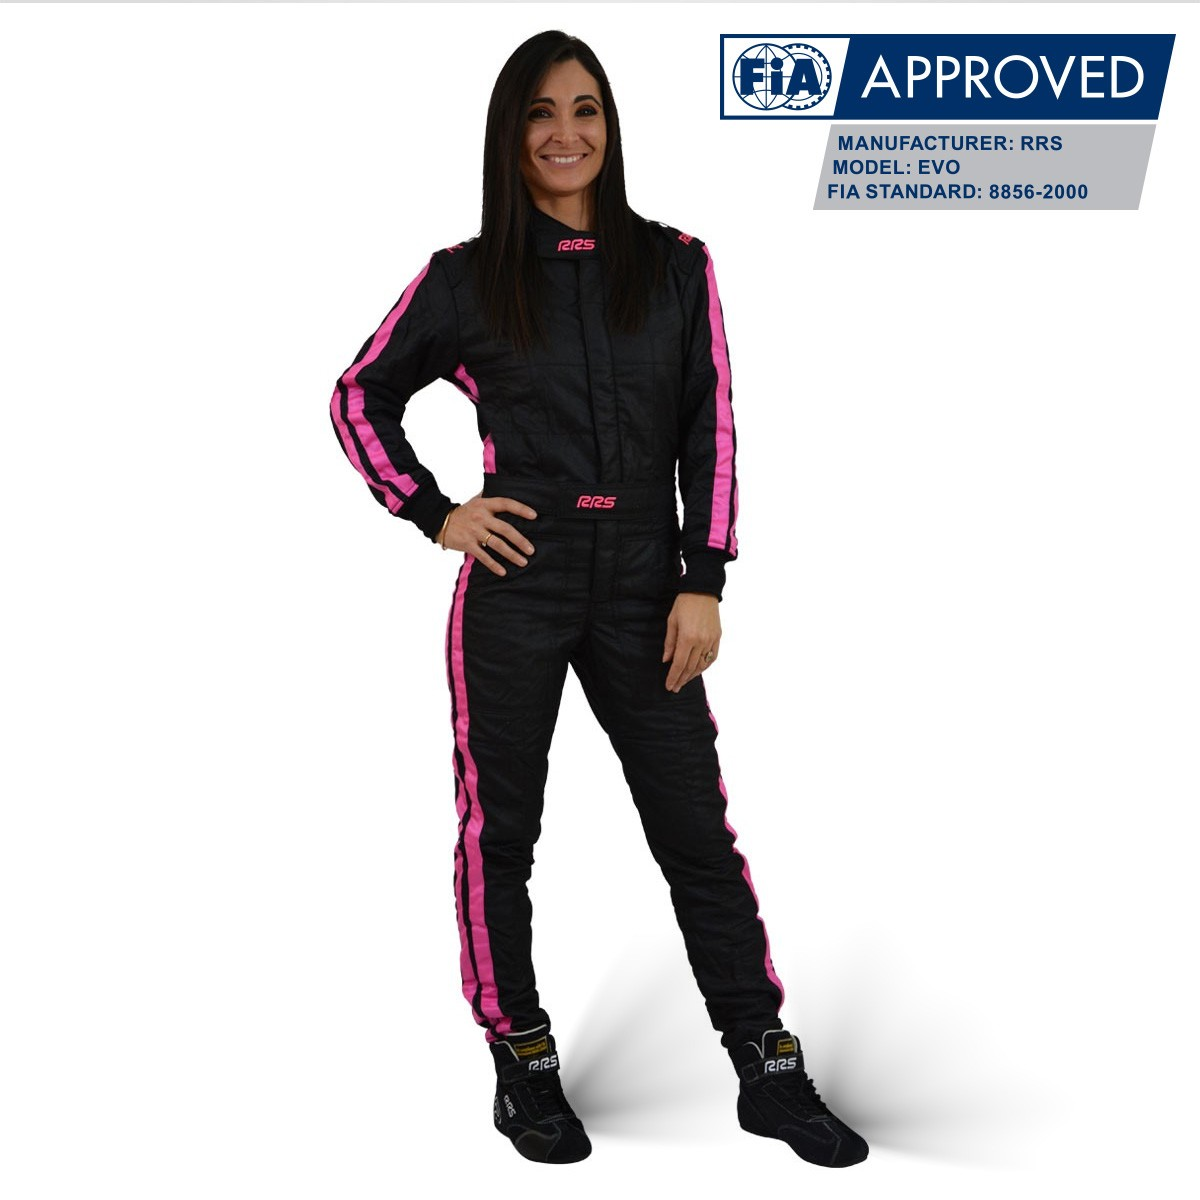 RRS Evo FIA Diamond Girl Race suit